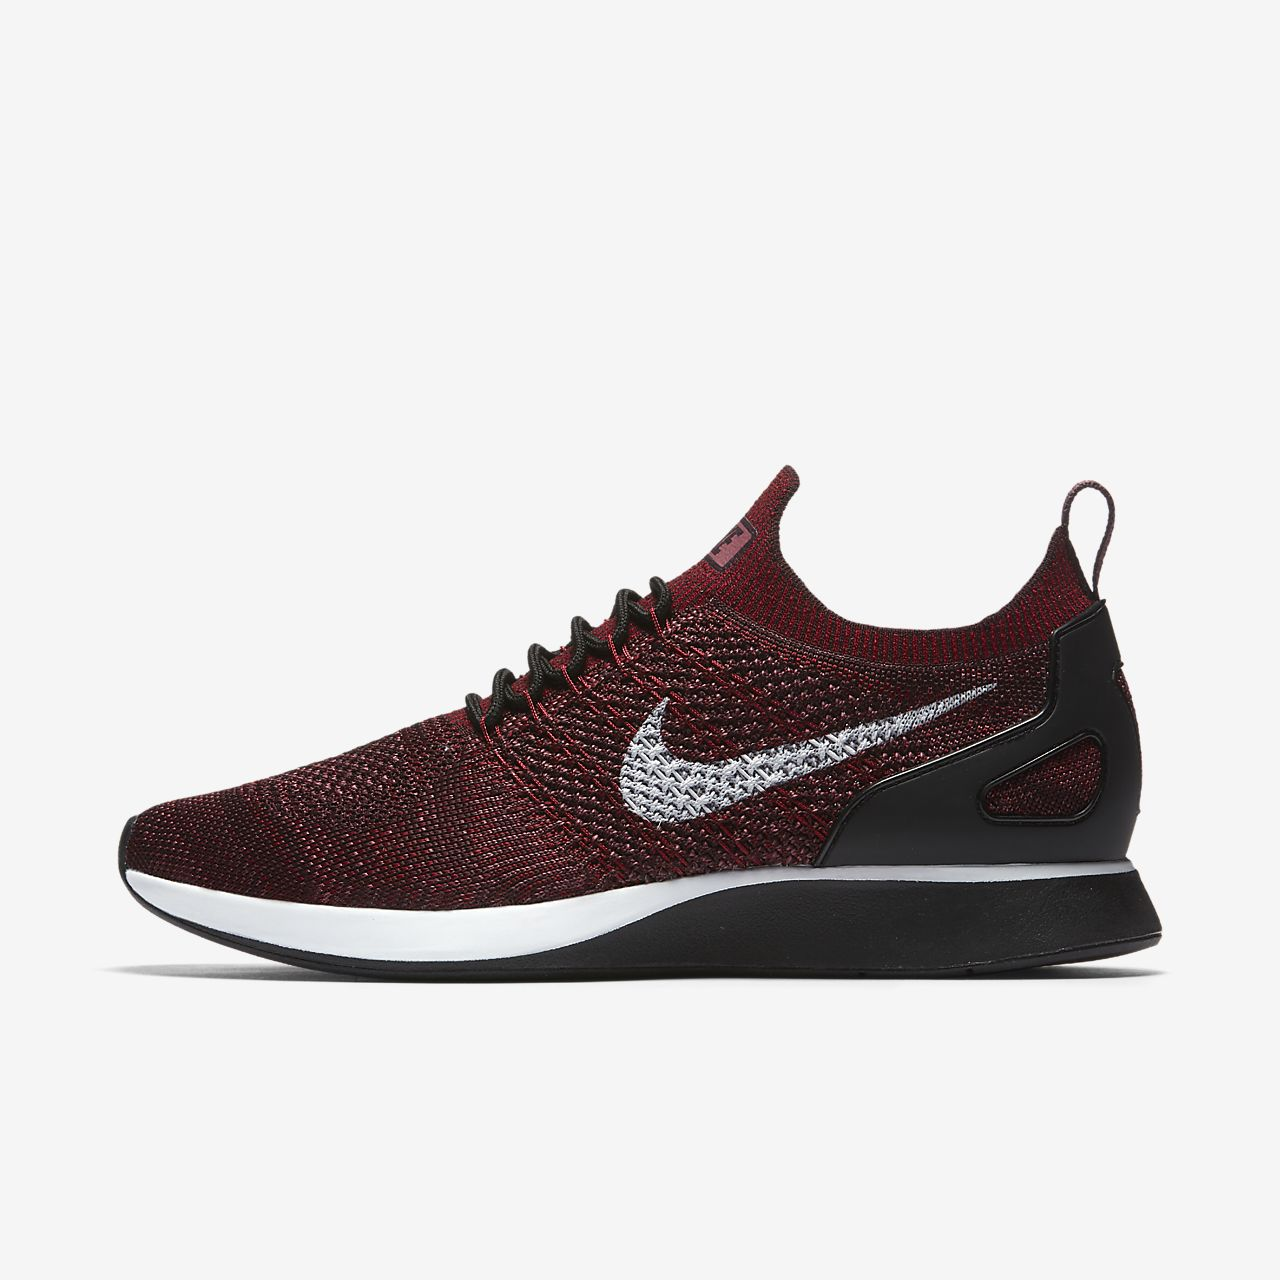 Découvrez Populaire Nike Air Zoom Mariah Flyknit Femme Chaussure Pas Cher Royer3601917